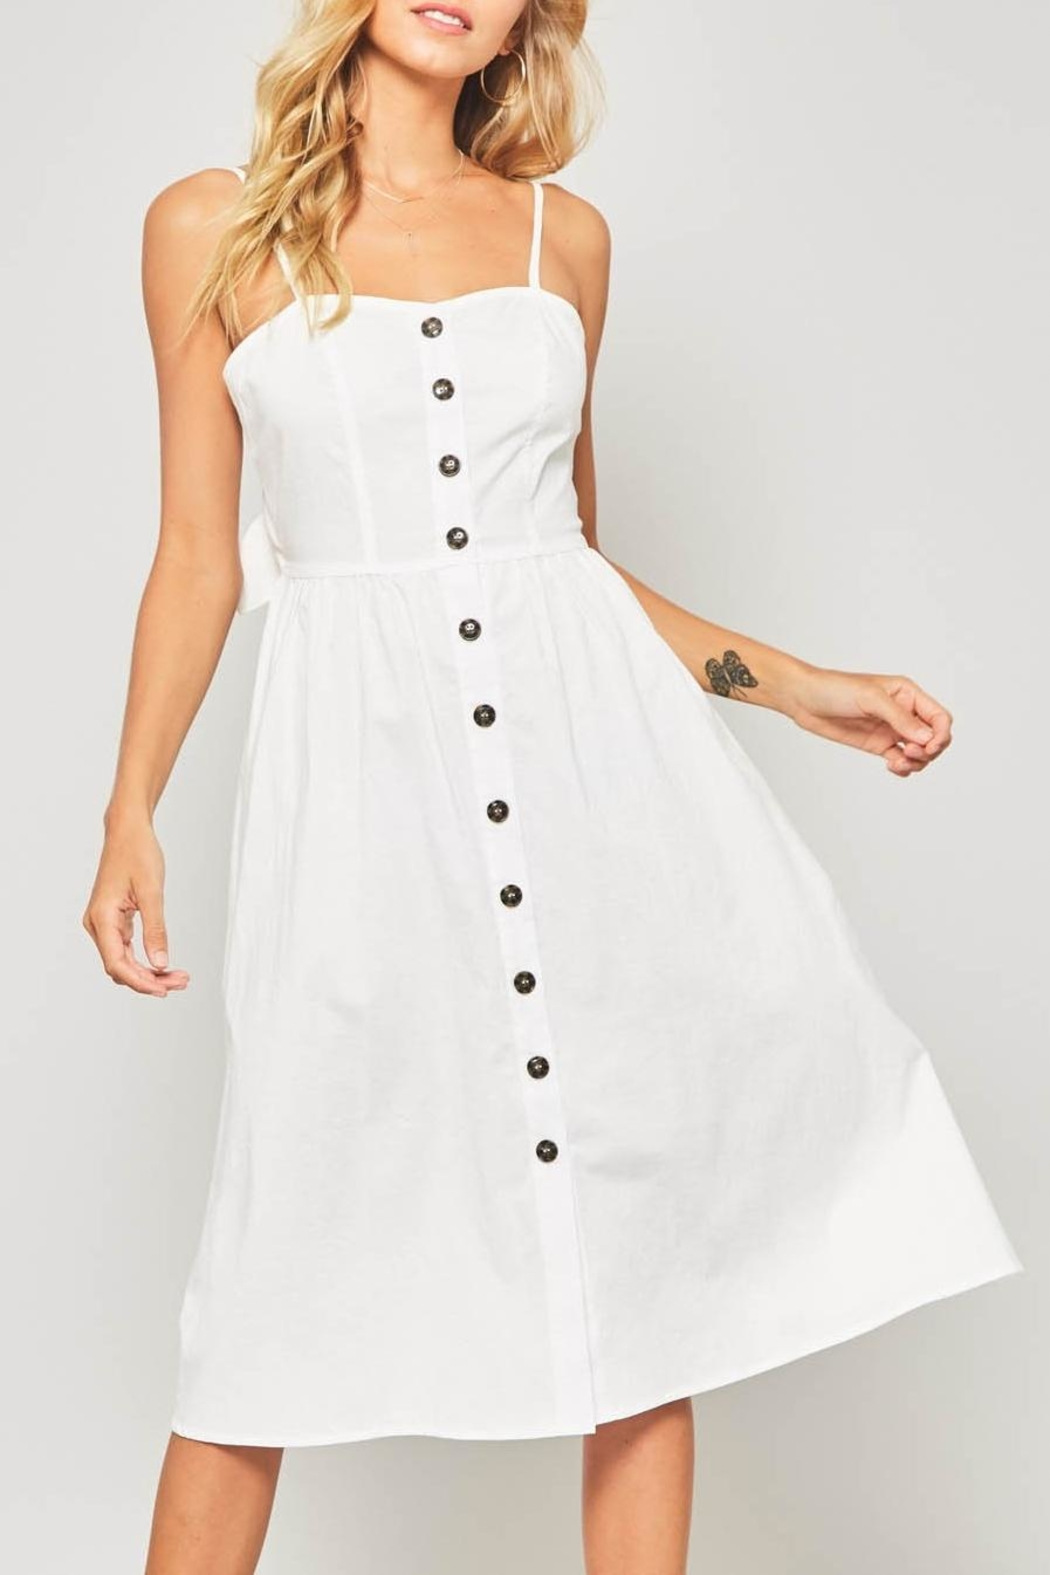 5f740e3d3e4 Promesa USA White Button-Down Midi-Dress from Virginia by mod&soul ...